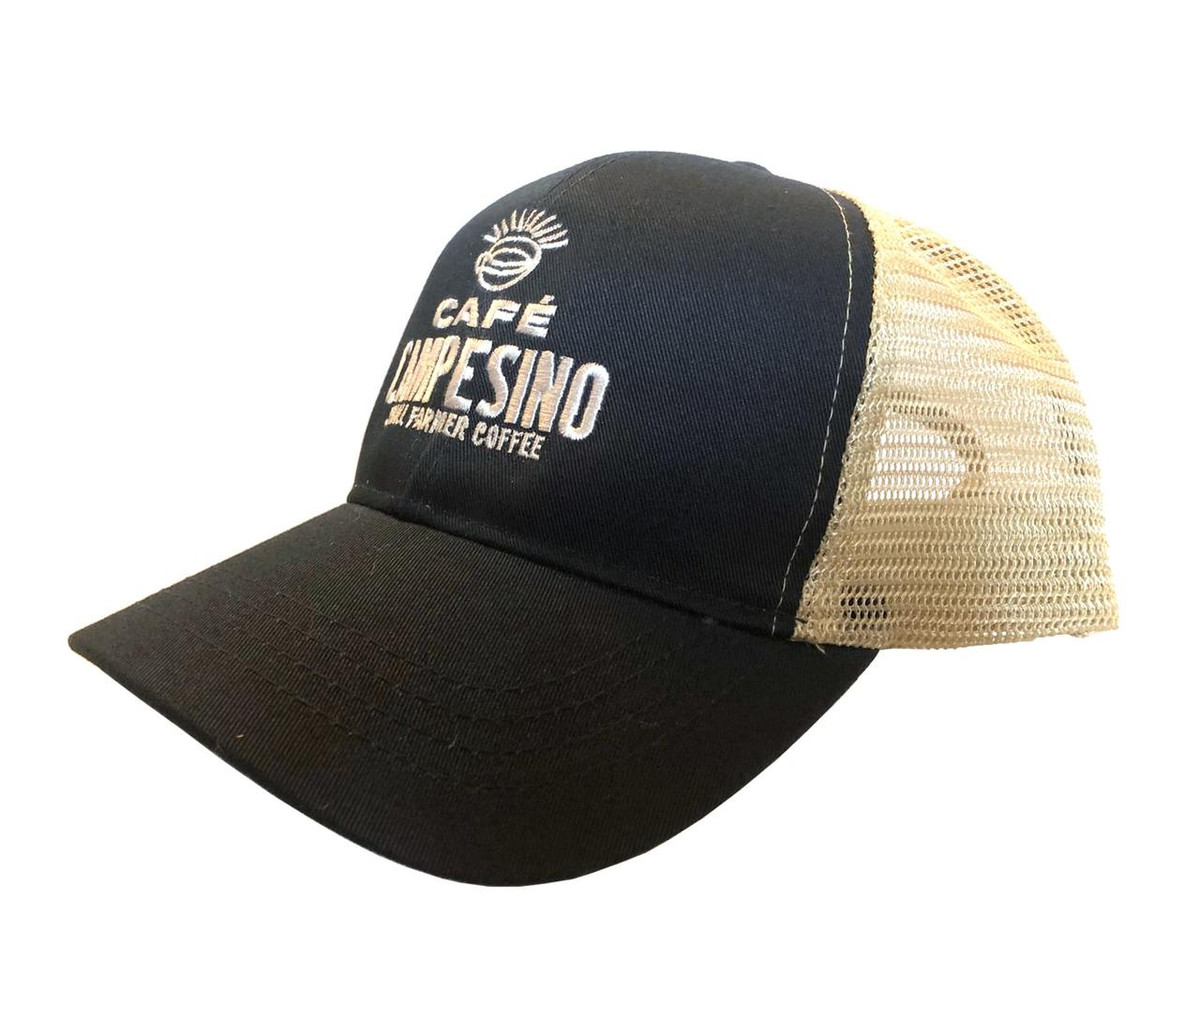 Navy-blue six panel eco-friendly trucker cap with Cafe Campesino embroidered logo on front.